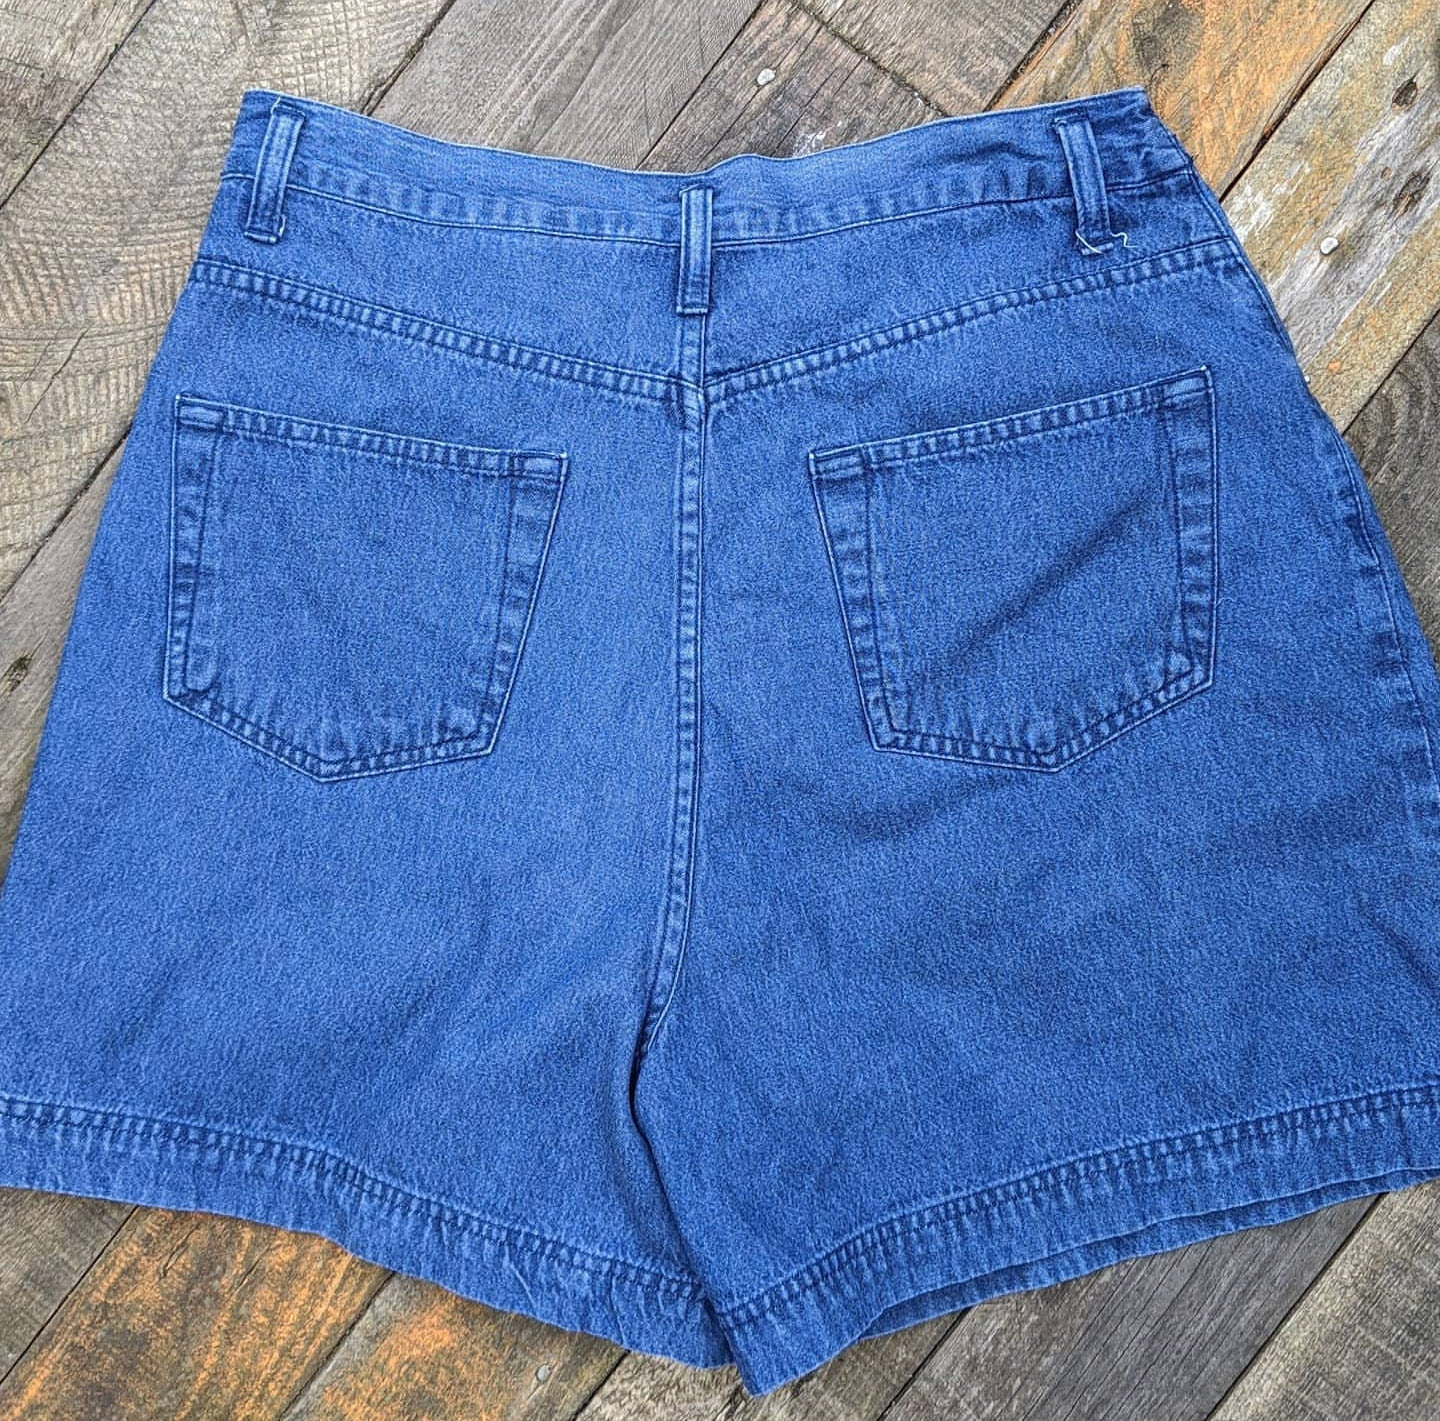 Vintage 80s high waist denim shorts, waist 30""